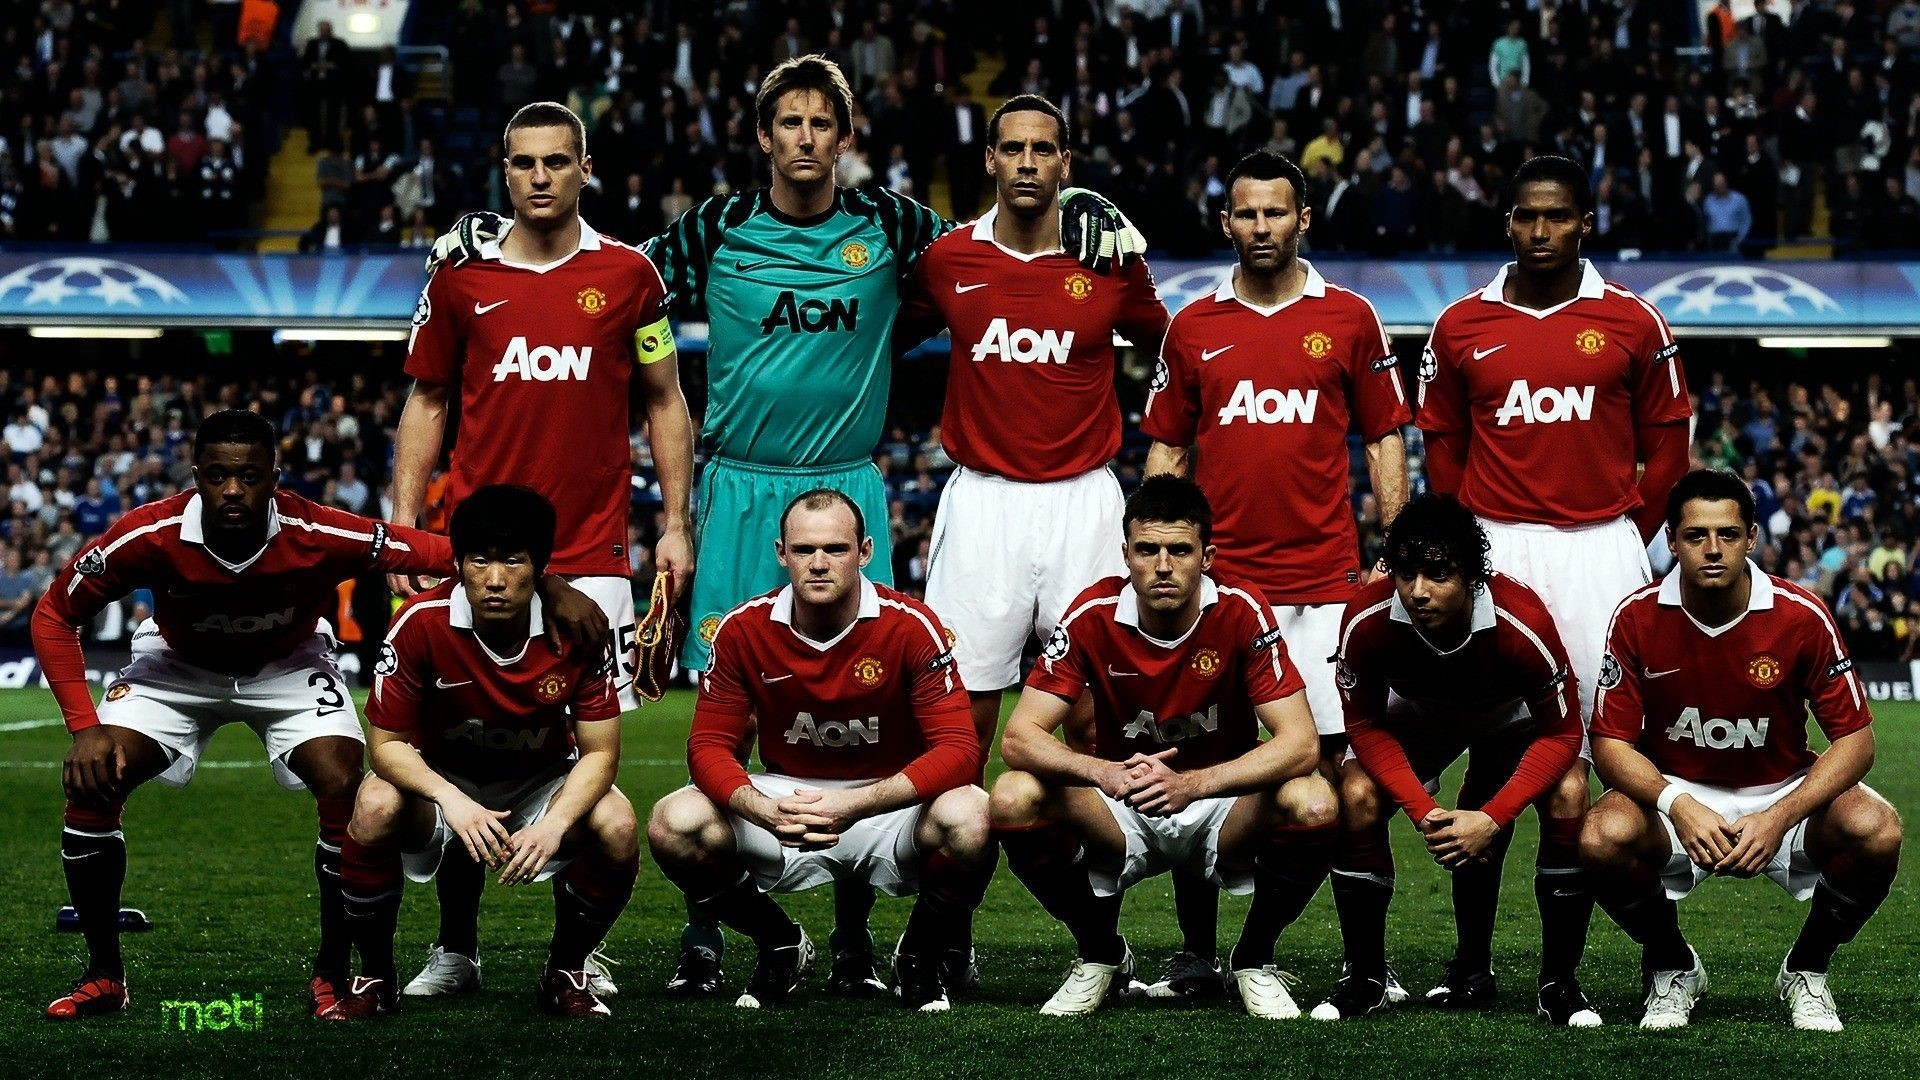 1920x1080 Manchester United Team Wallpapers - Wallpaper Cave